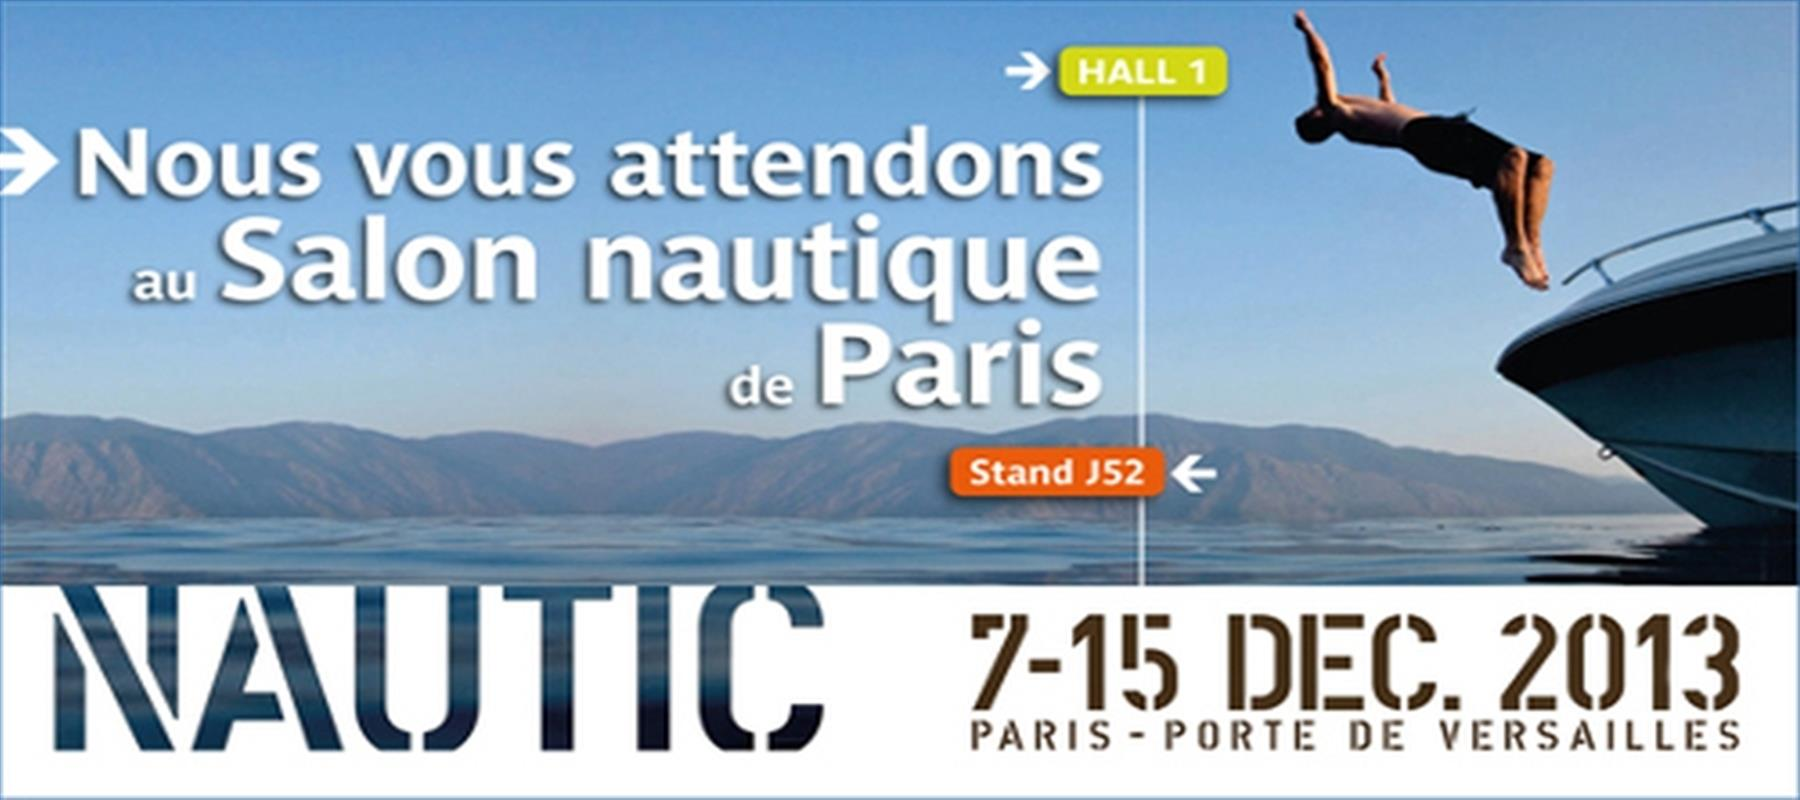 hotel paris proche du salon nautic h tel proche salon